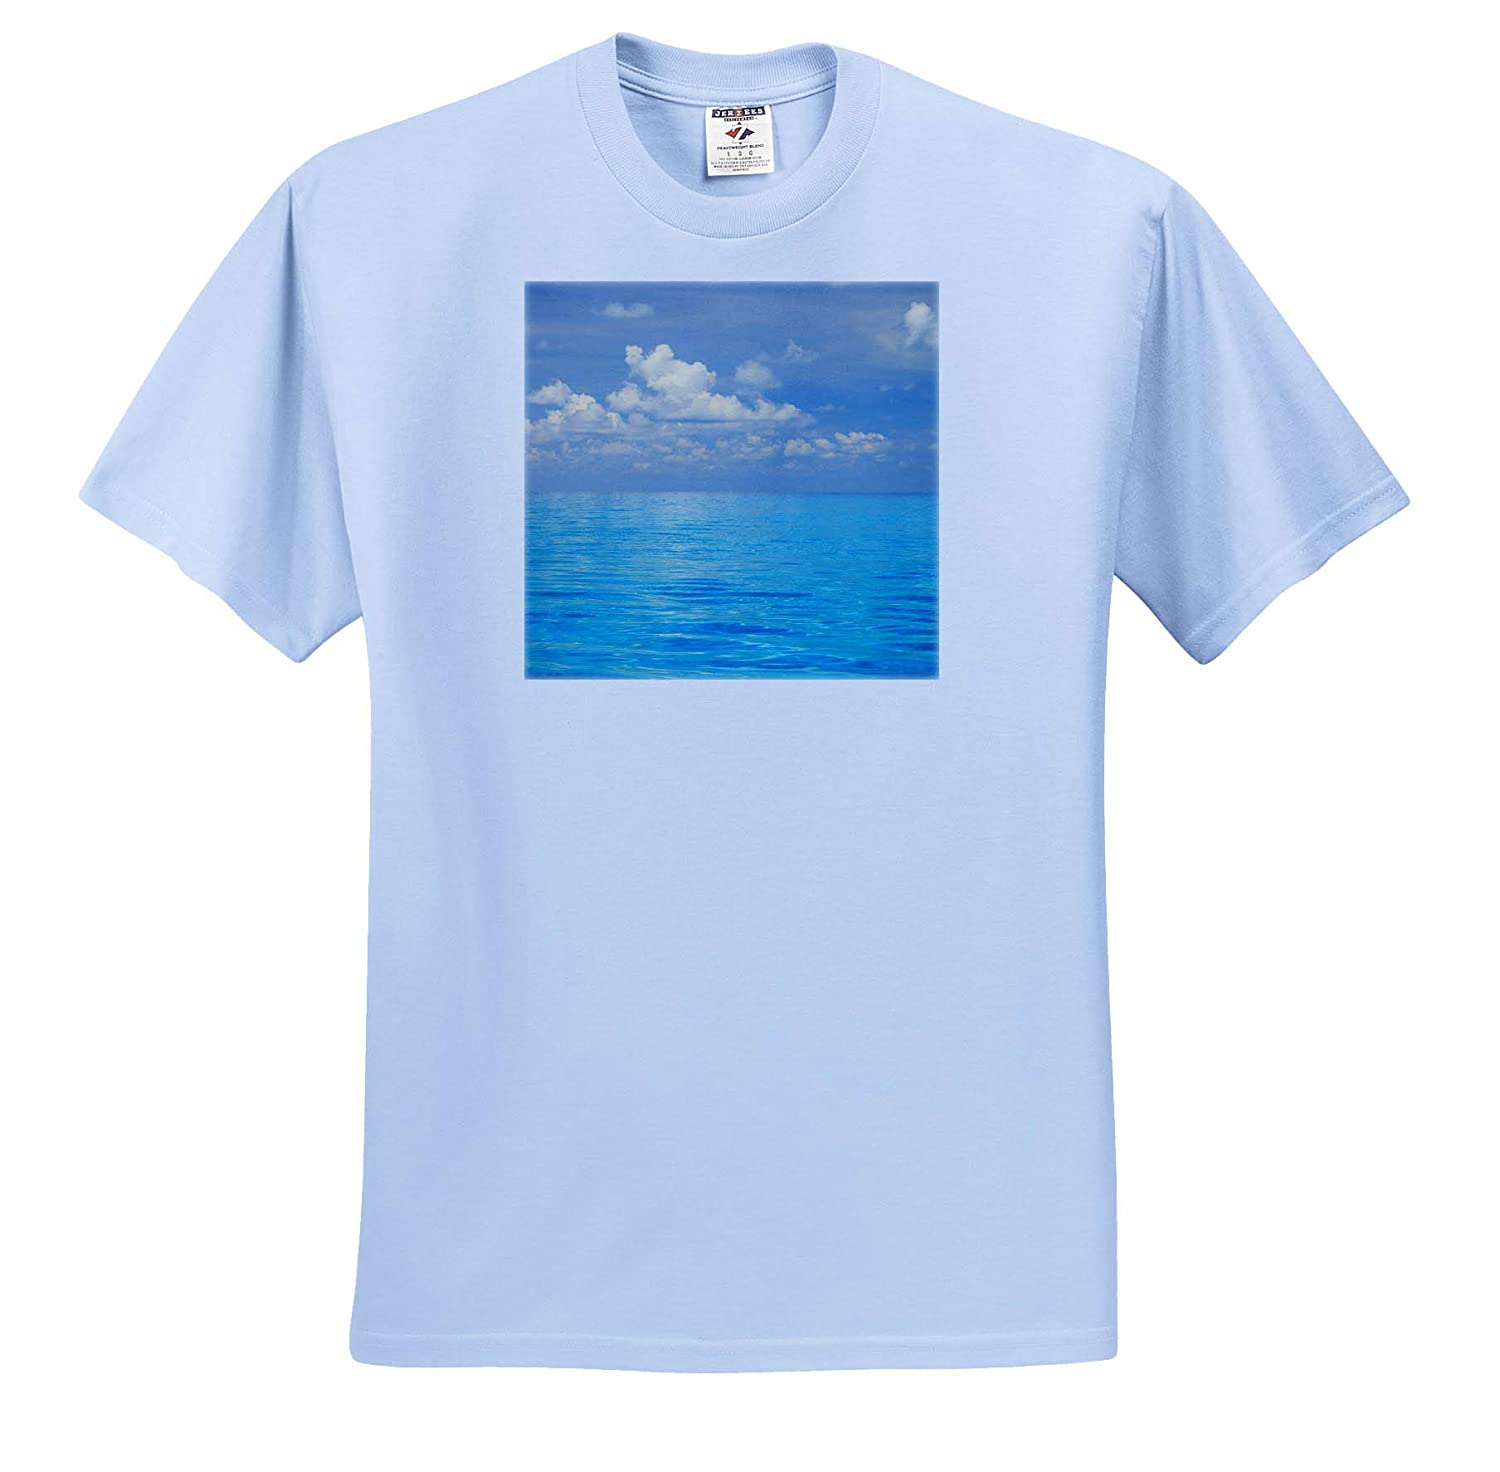 ts/_312980 - Adult T-Shirt XL Seascapes 3dRose Danita Delimont Close-up of Blue Tropical Water Bahamas